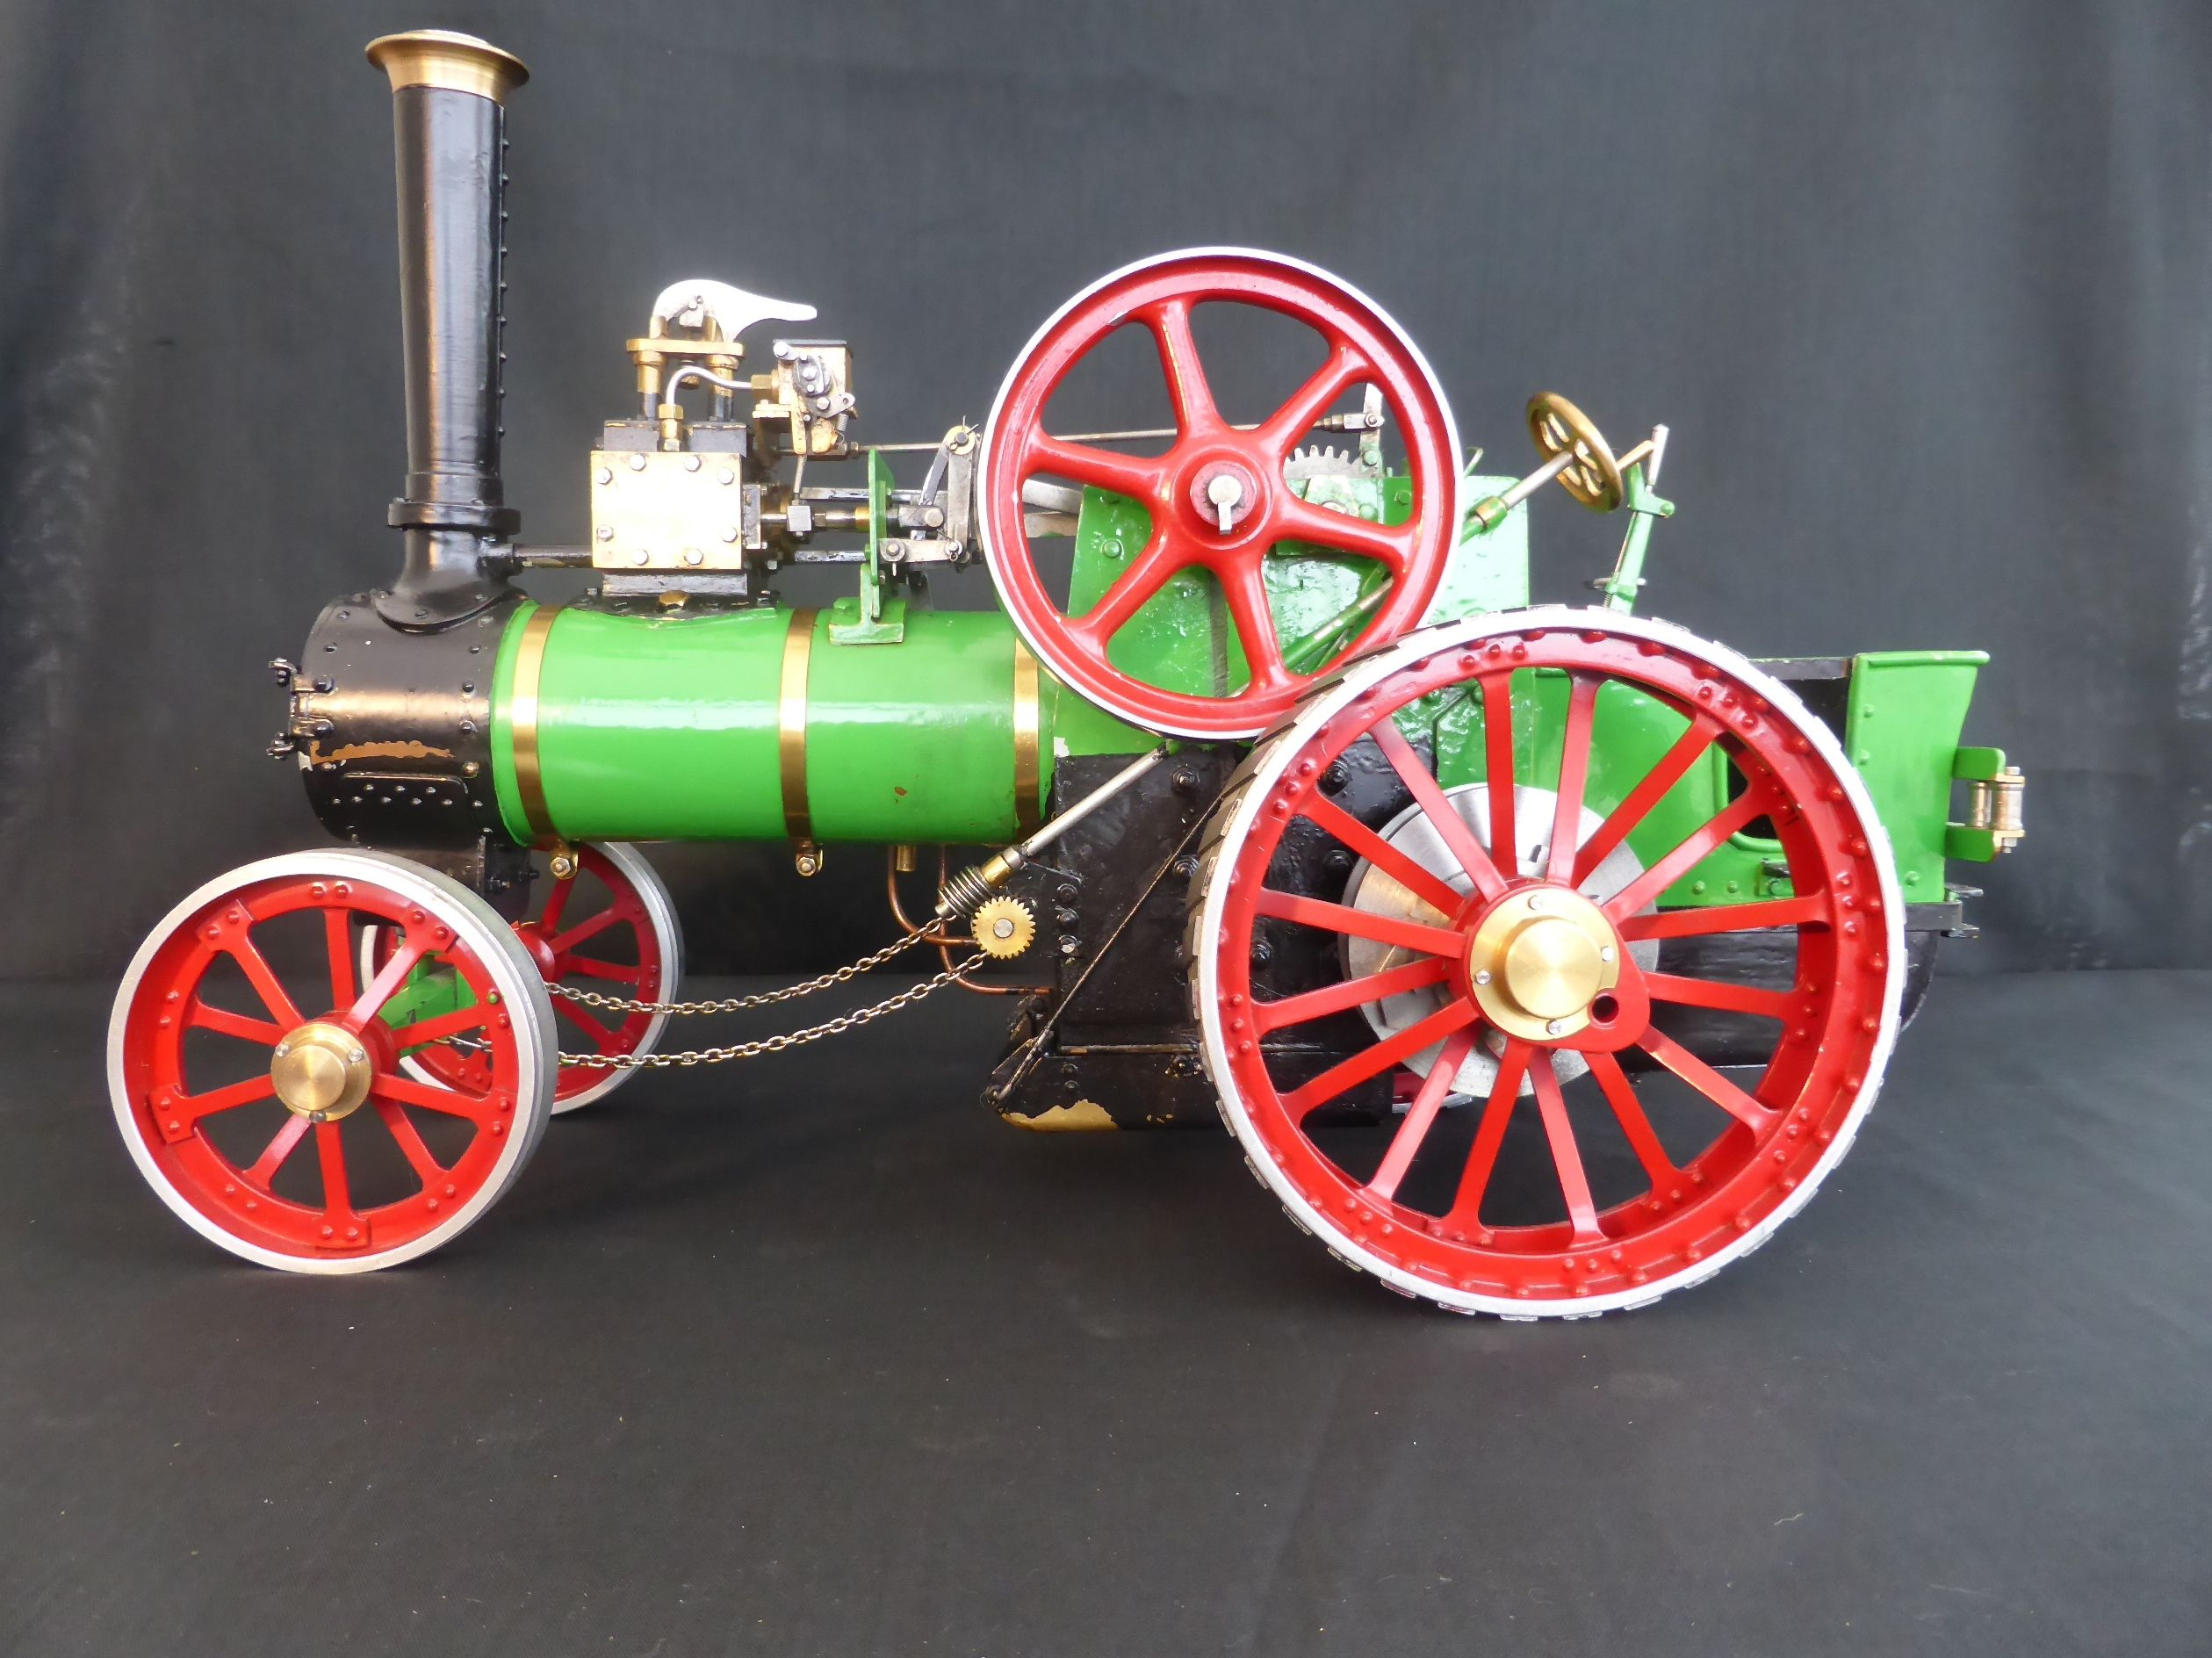 Free pictures of steam engines Falguni Mehta Marriage Bureau: Grooms Wanted